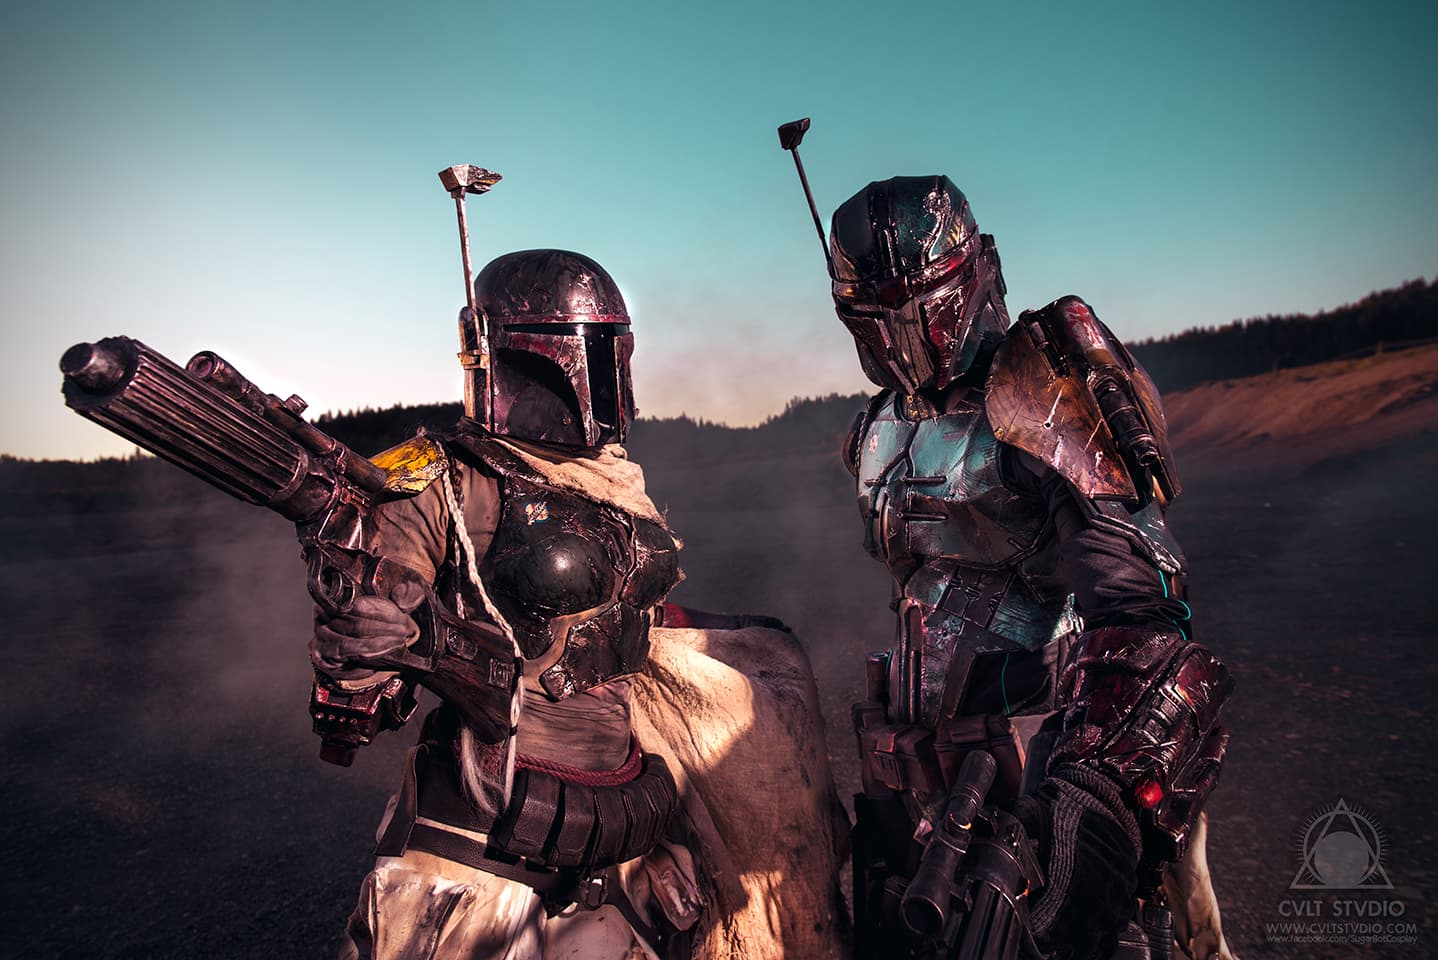 SugarBot Cosplay as Mythos Boba Fett with Play Arts Kai Boba Fett